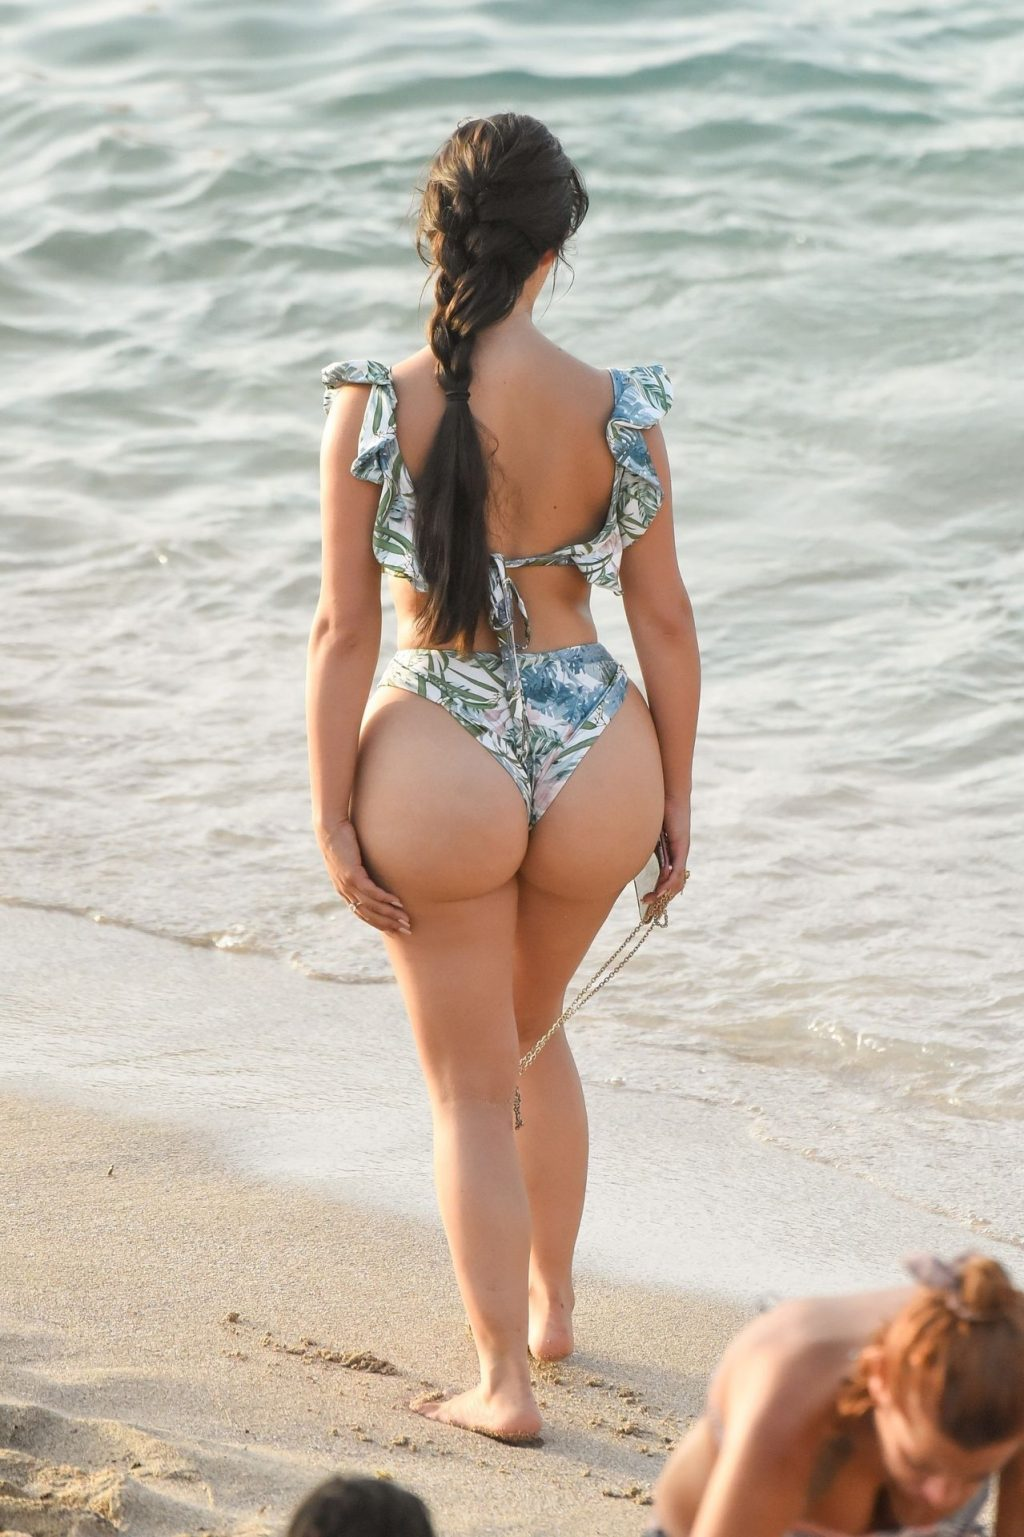 Demi Rose Flaunts her Curves on the Beach During the Ibiza Sunset (15 Photos)